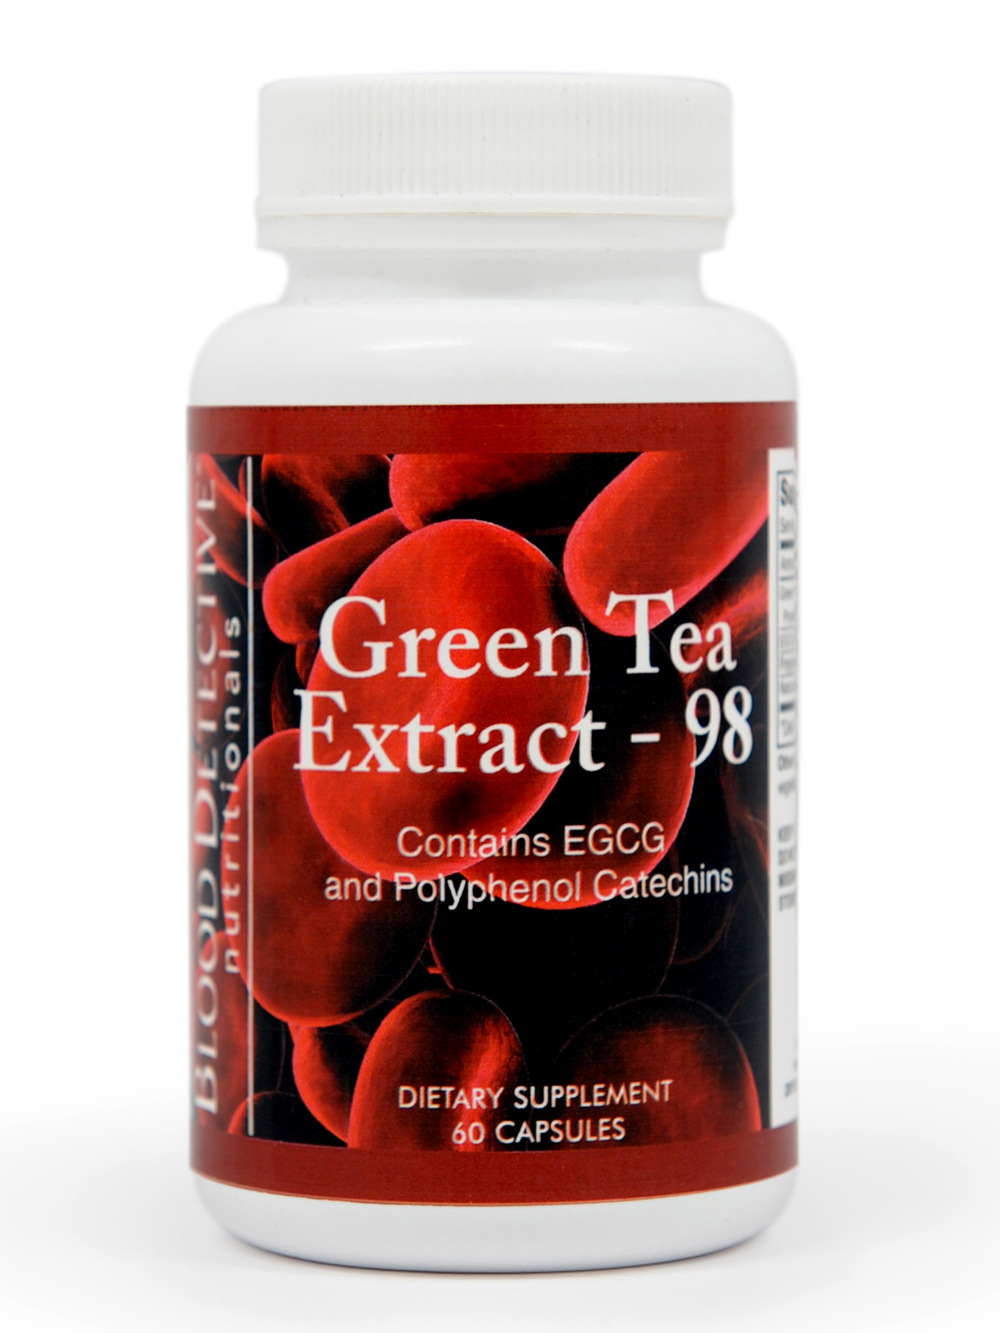 Green-Tea-Extract-95-200x300.png